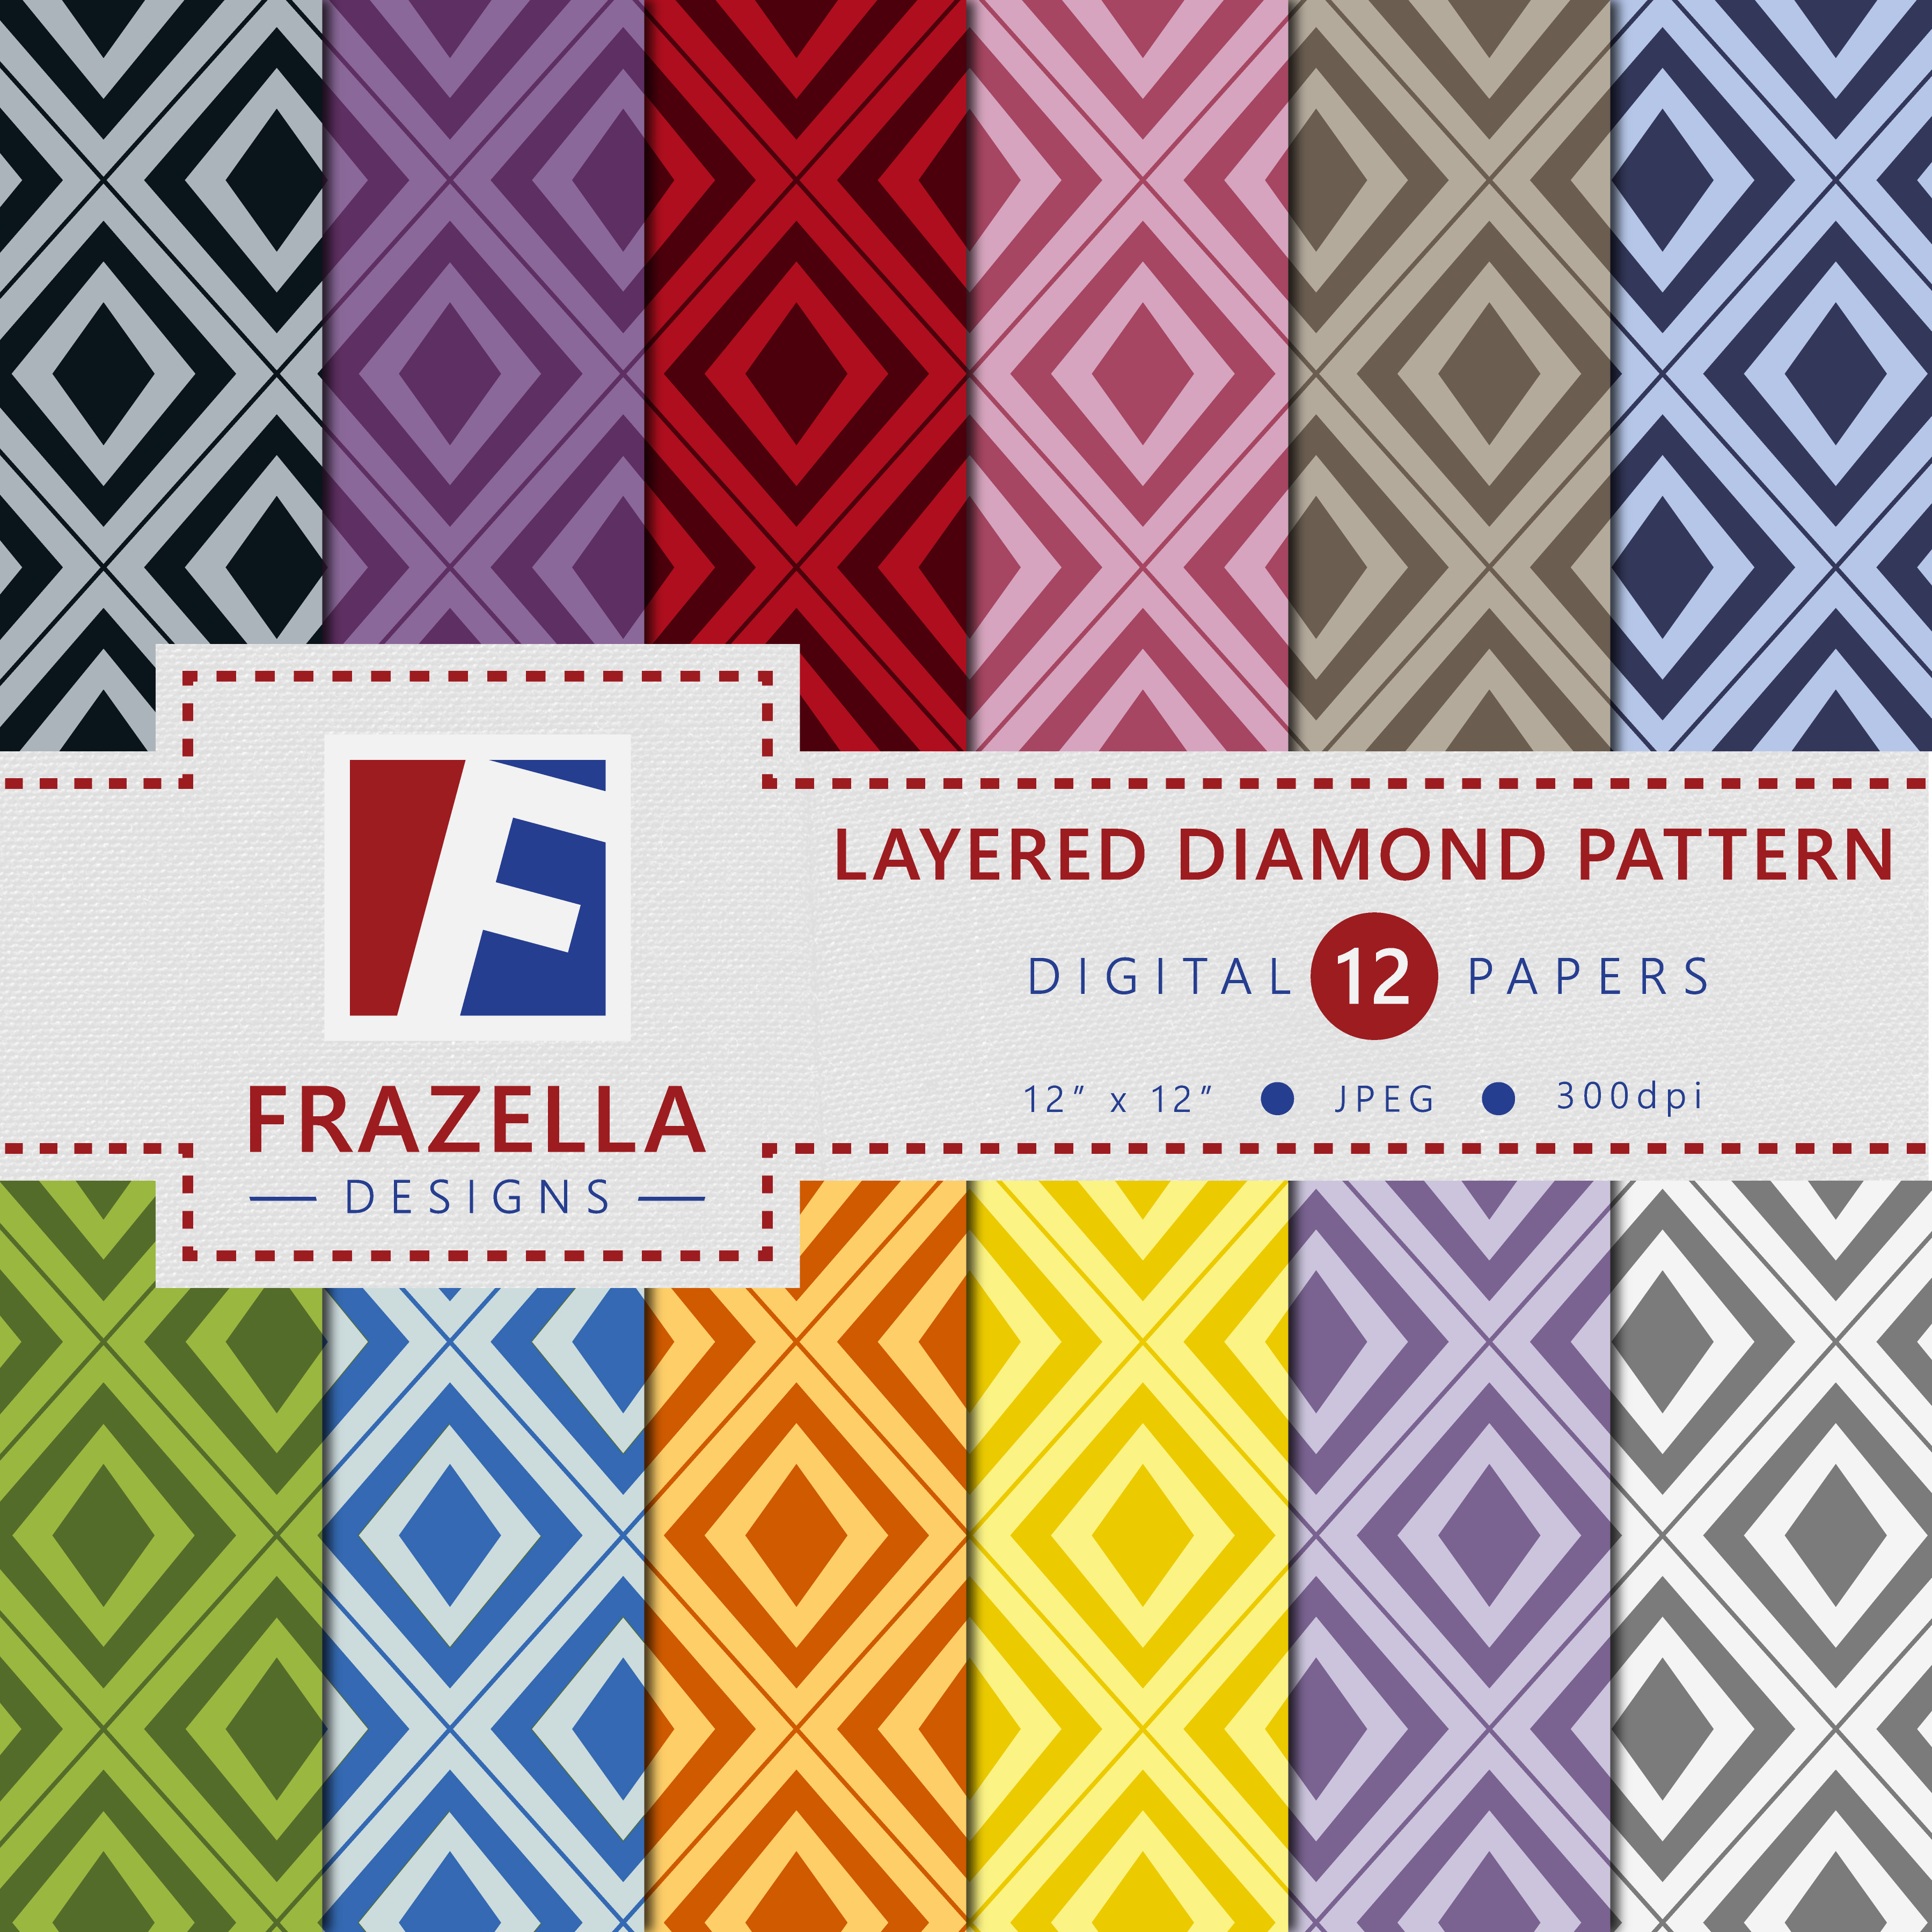 Download Free Layered Diamond Pattern Digital Paper Collection Graphic By for Cricut Explore, Silhouette and other cutting machines.